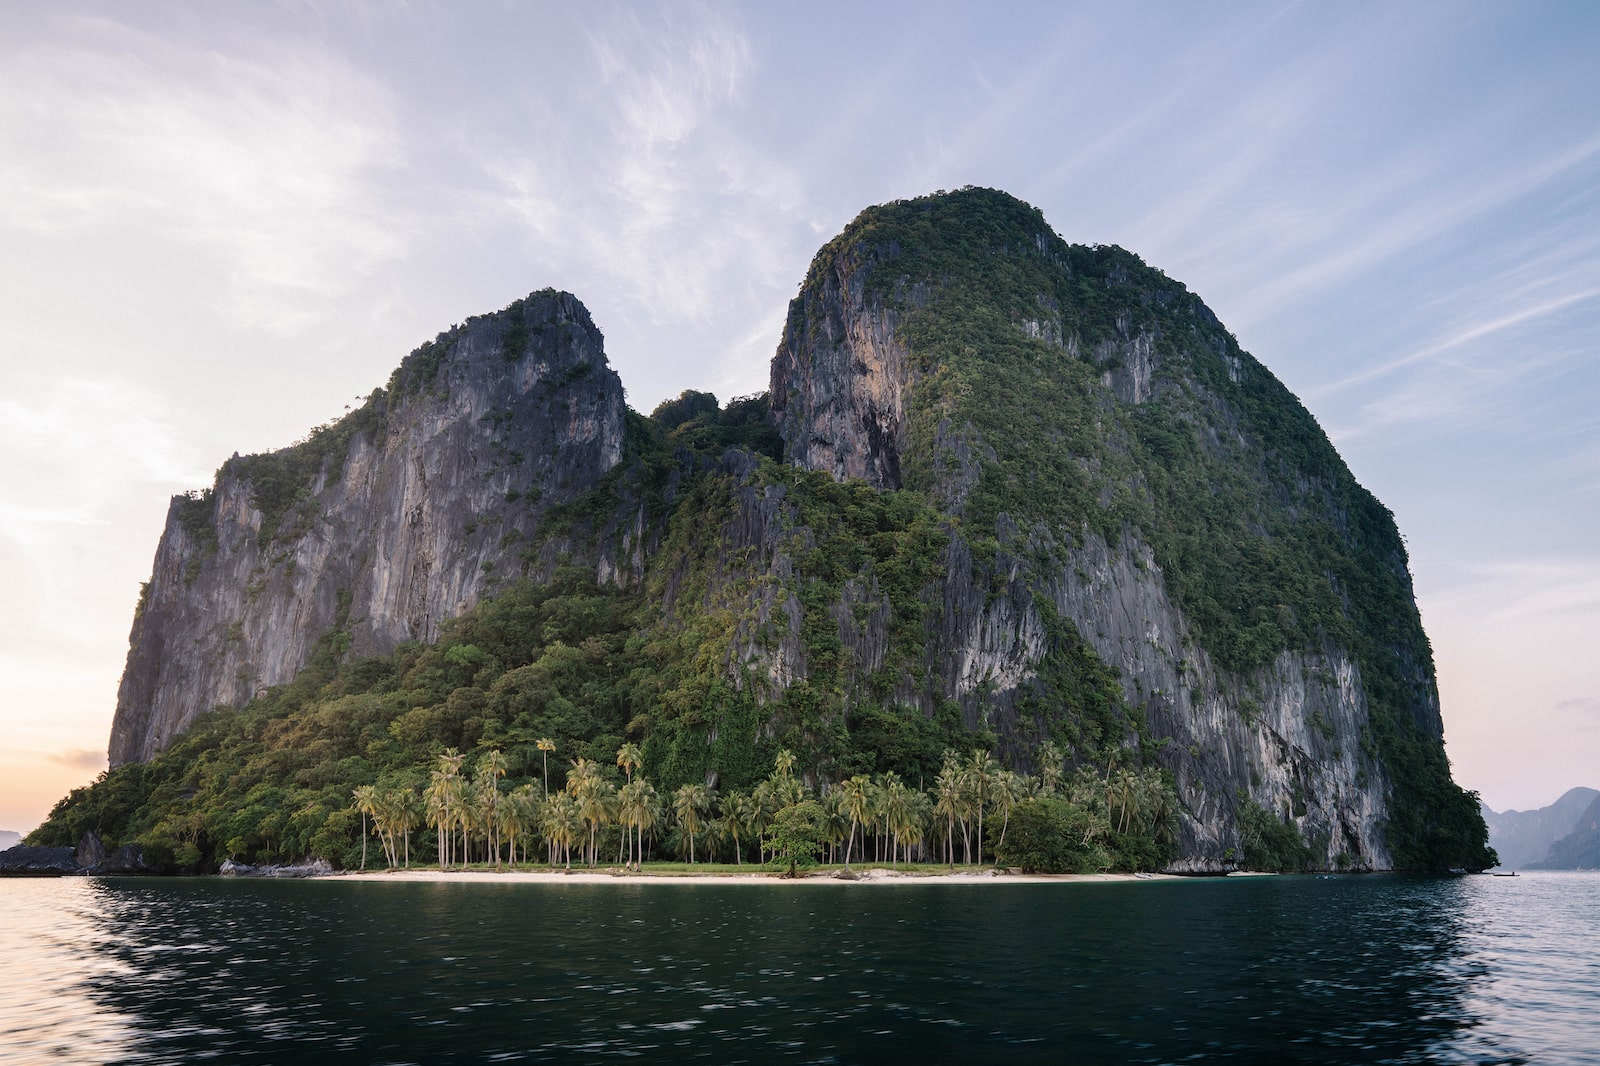 Island structure of El Nido